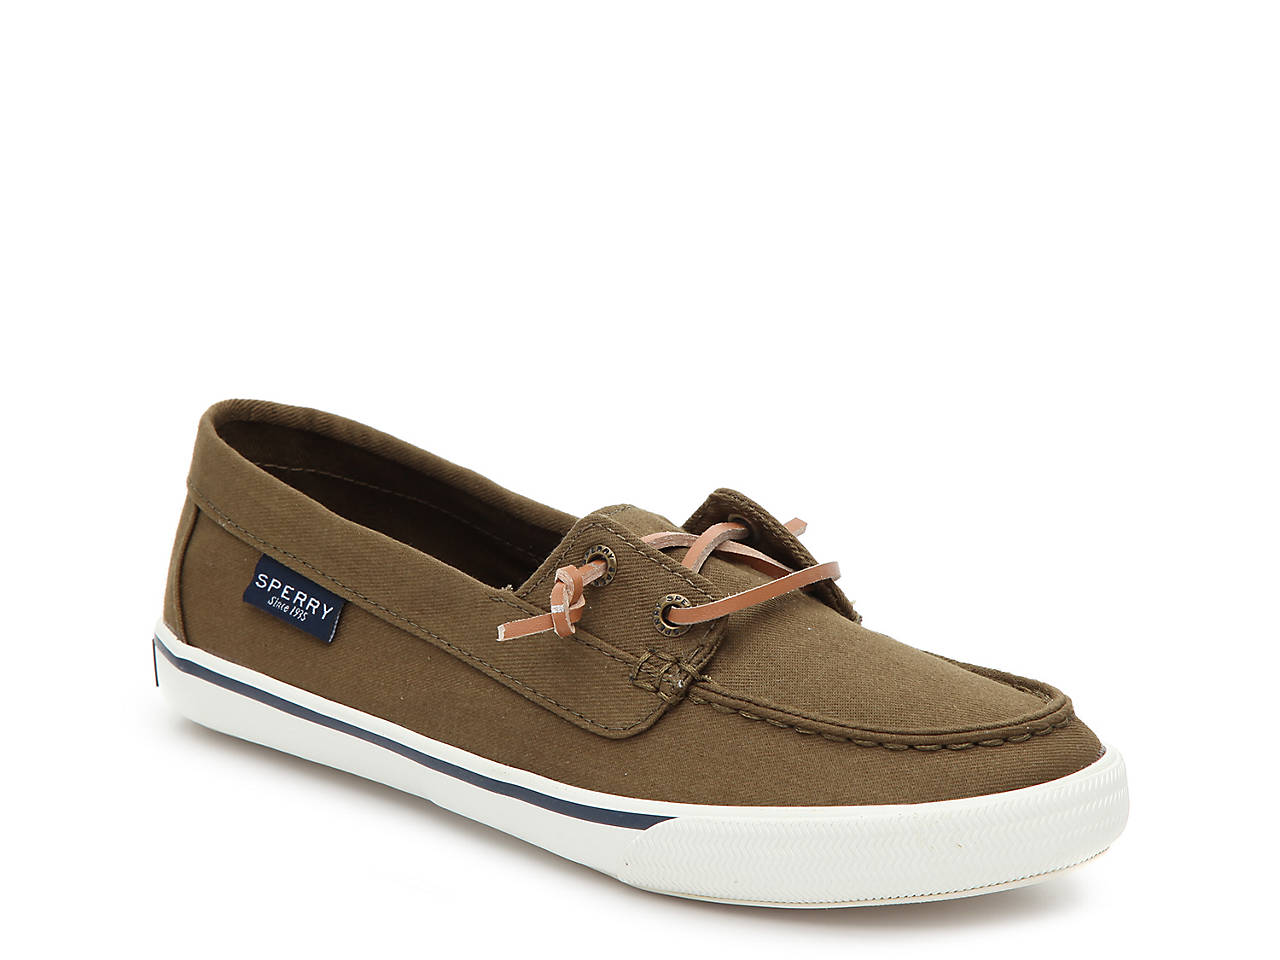 443f2c1805bfd Sperry Top-Sider Lounge Away Boat Shoe Women's Shoes | DSW